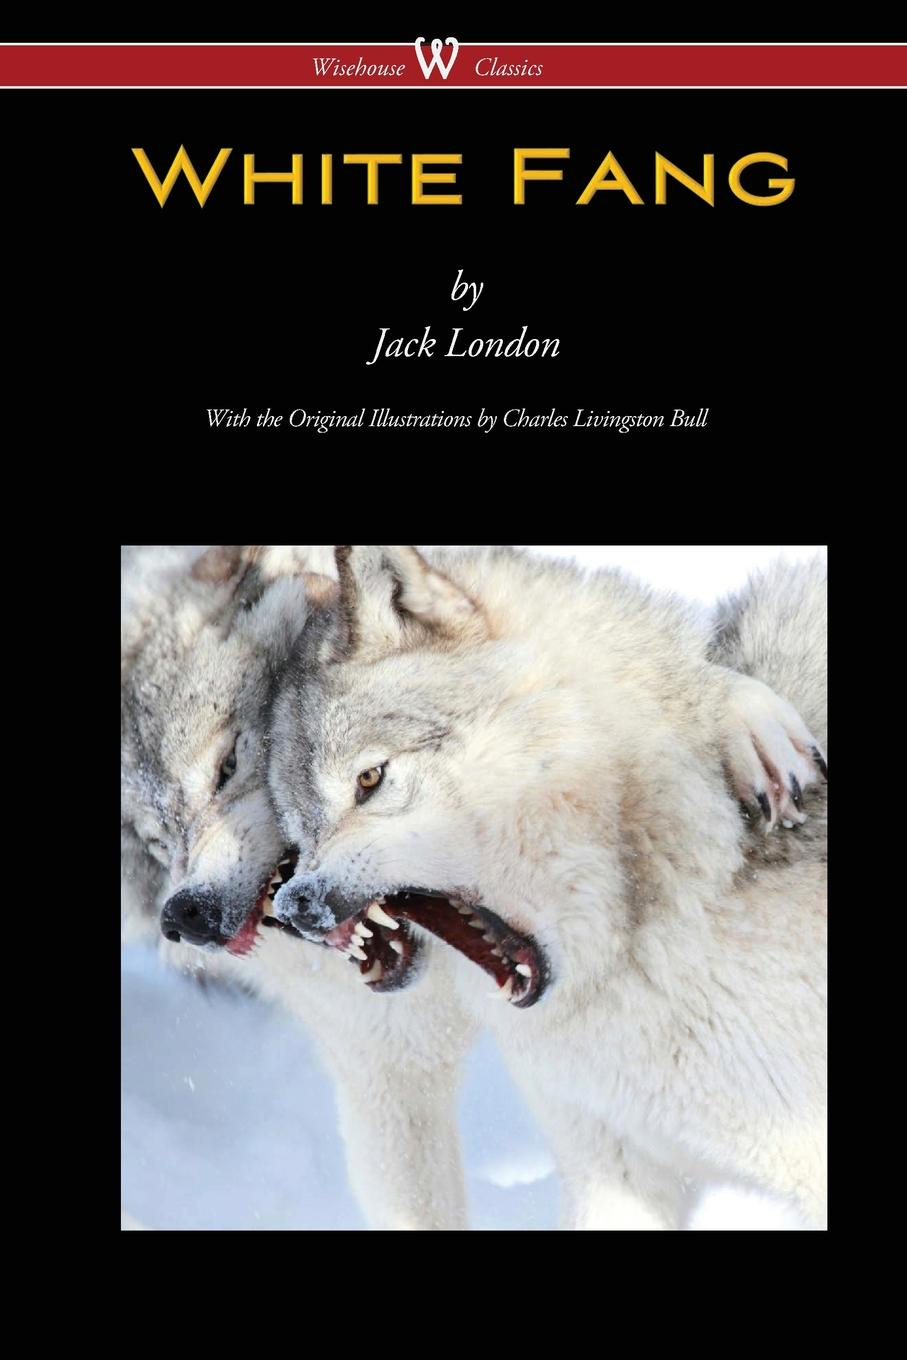 Jack London White Fang (Wisehouse Classics - with original illustrations) london jack white fang and the call of the wild